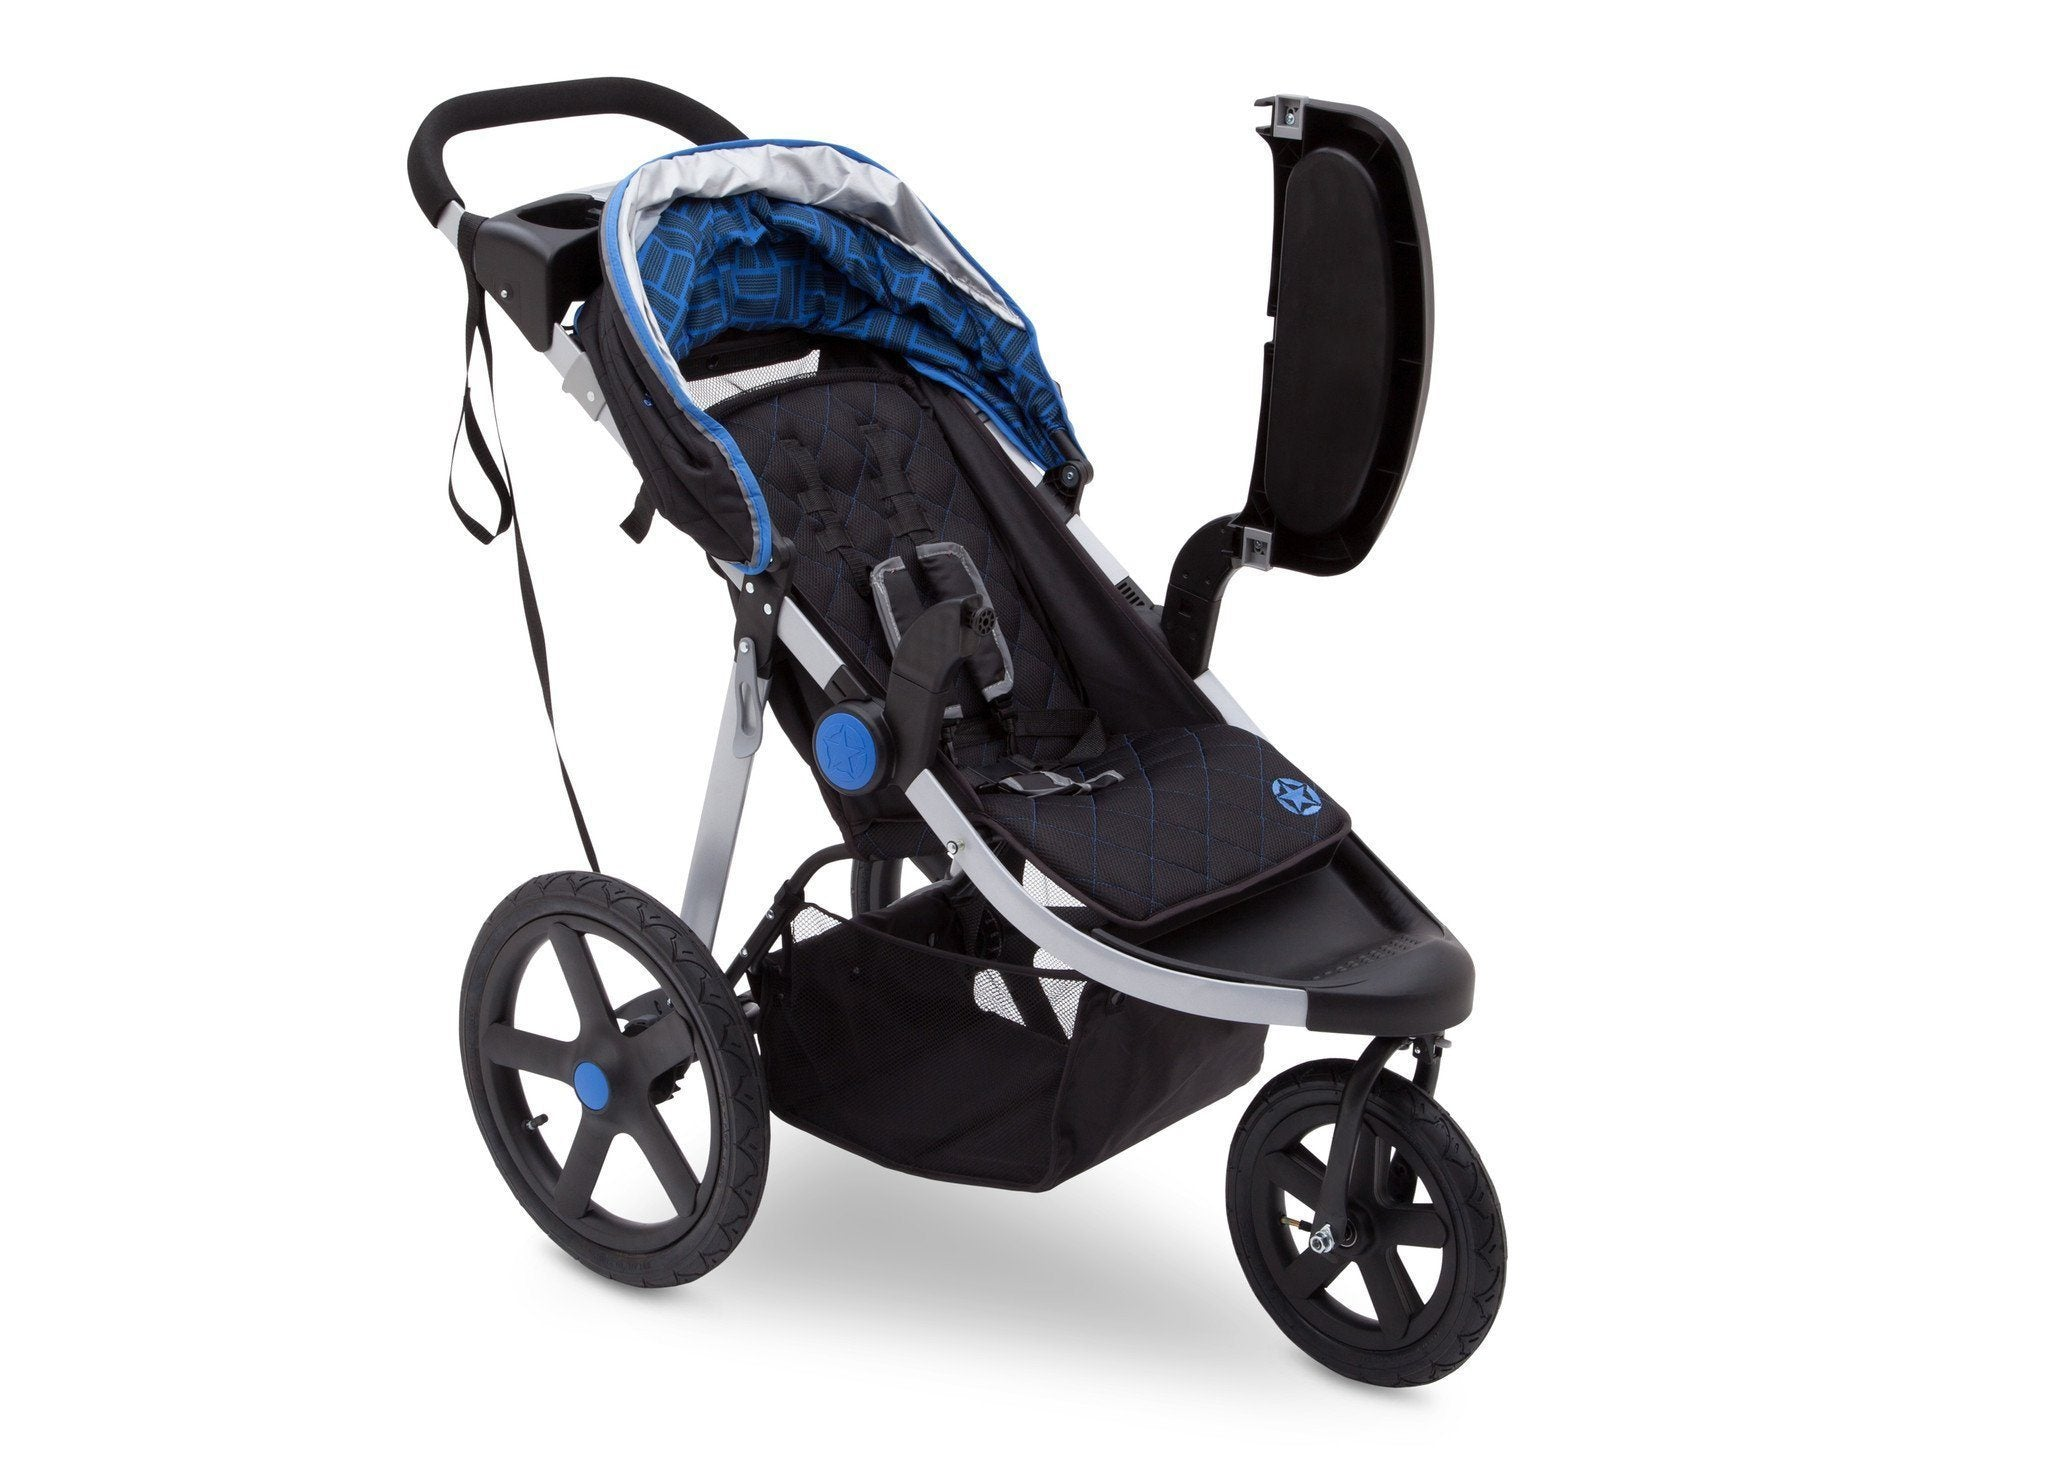 Jeep Adventure All Terrain Jogger Stroller by Delta Children, Tracks (439), with swing-away child tray for easy infant loading